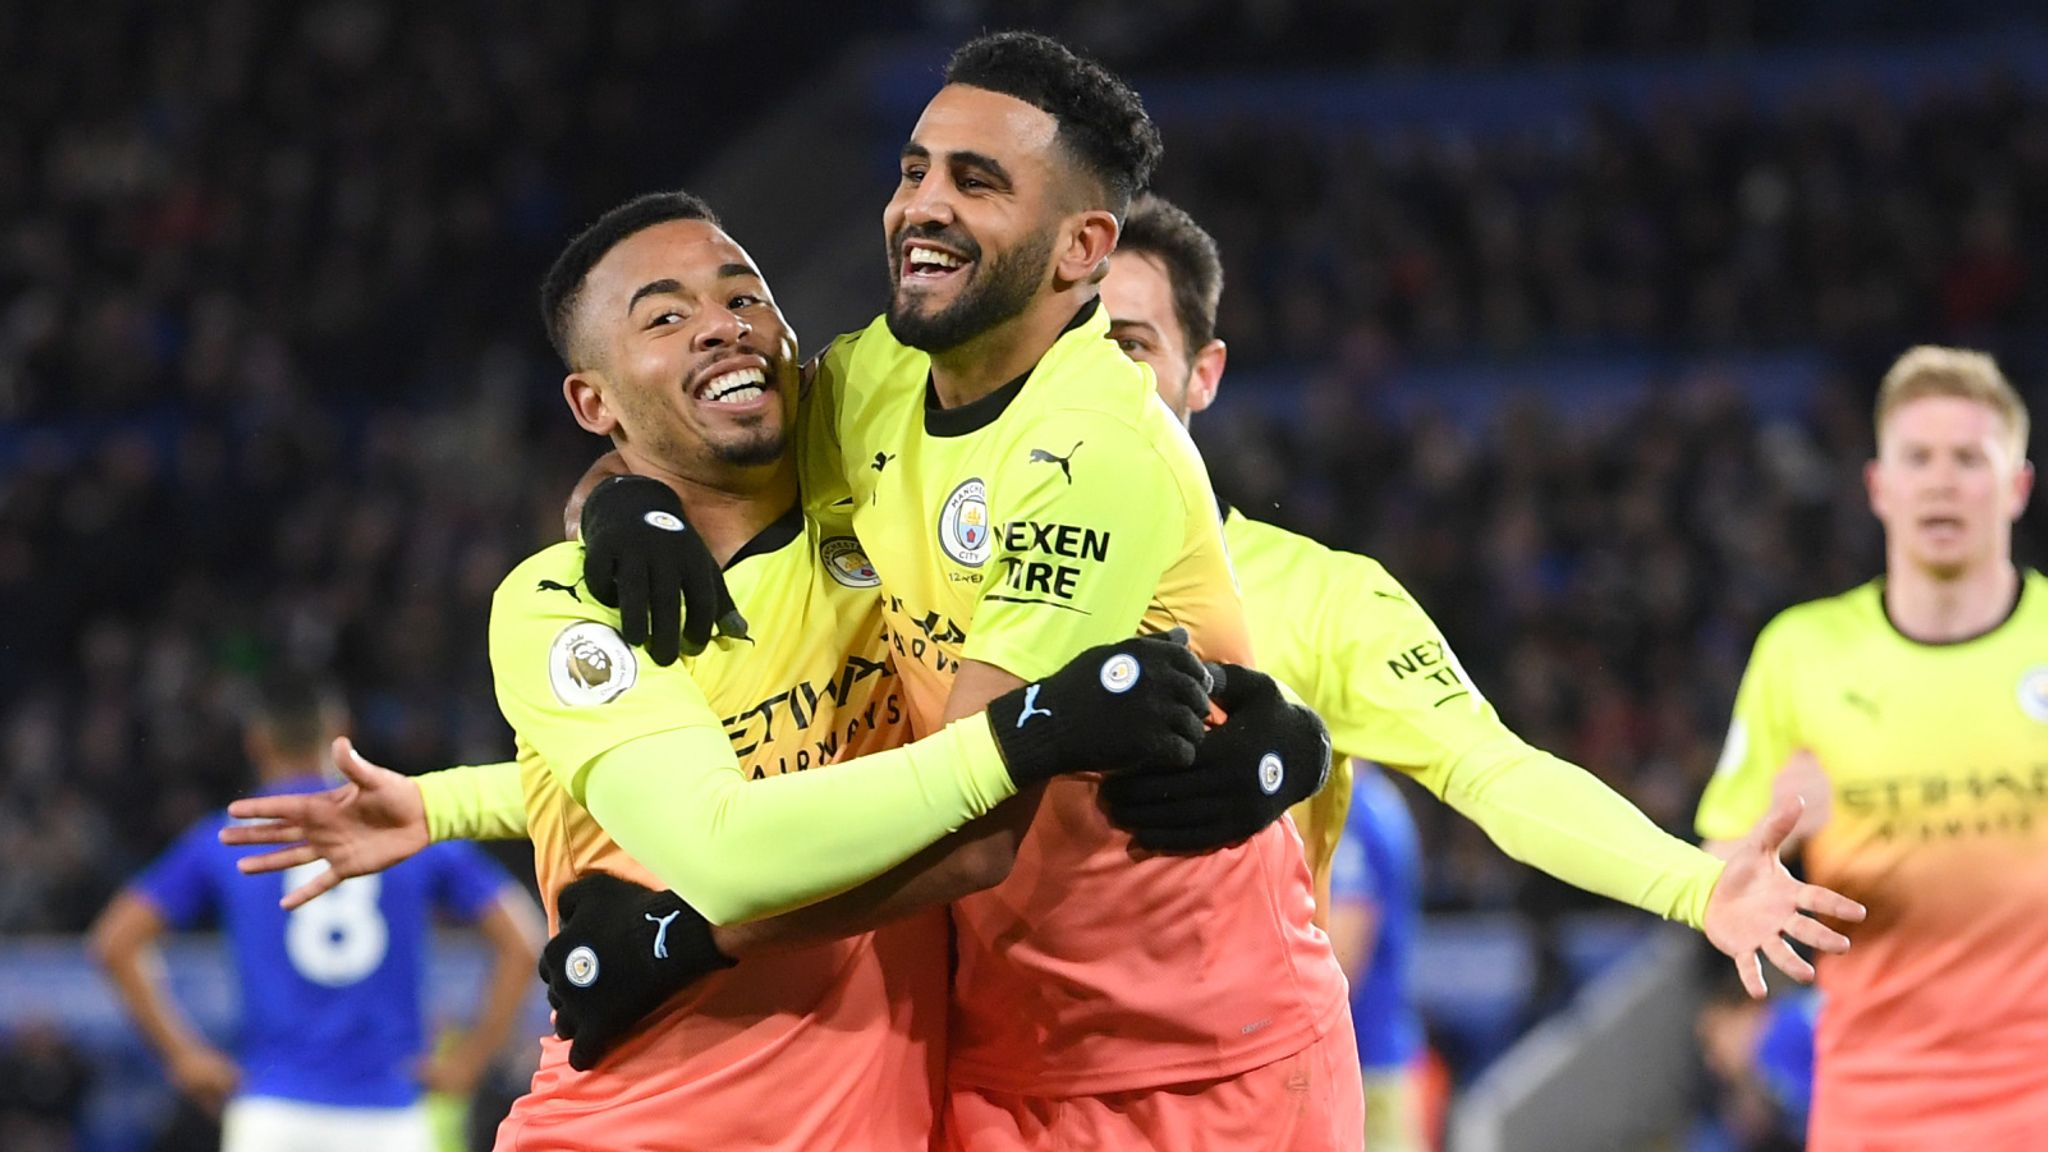 Leicester 0-1 Manchester City: Gabriel Jesus grabs late win after Sergio Aguero penalty miss